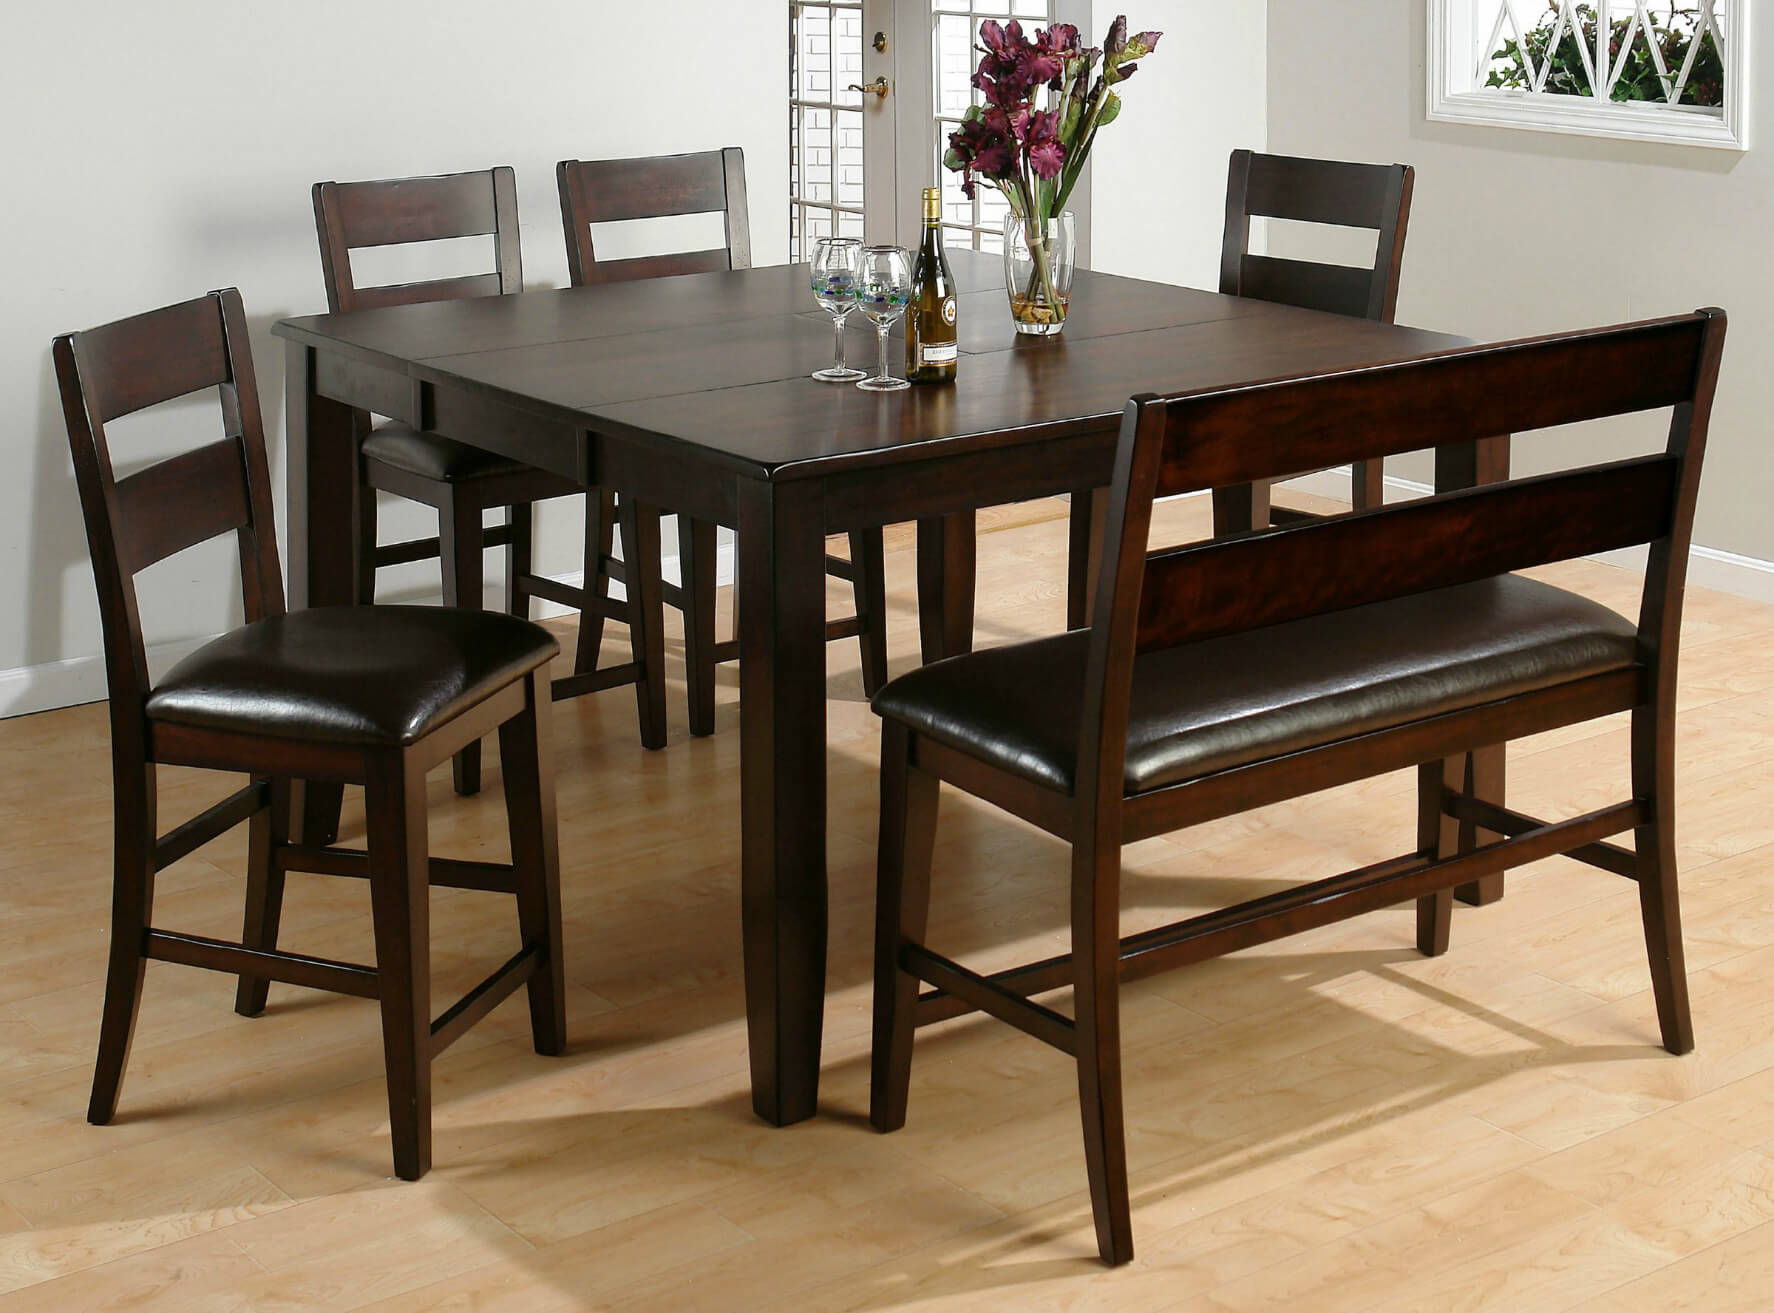 26 big small dining room sets with bench seating Dining table and bench set